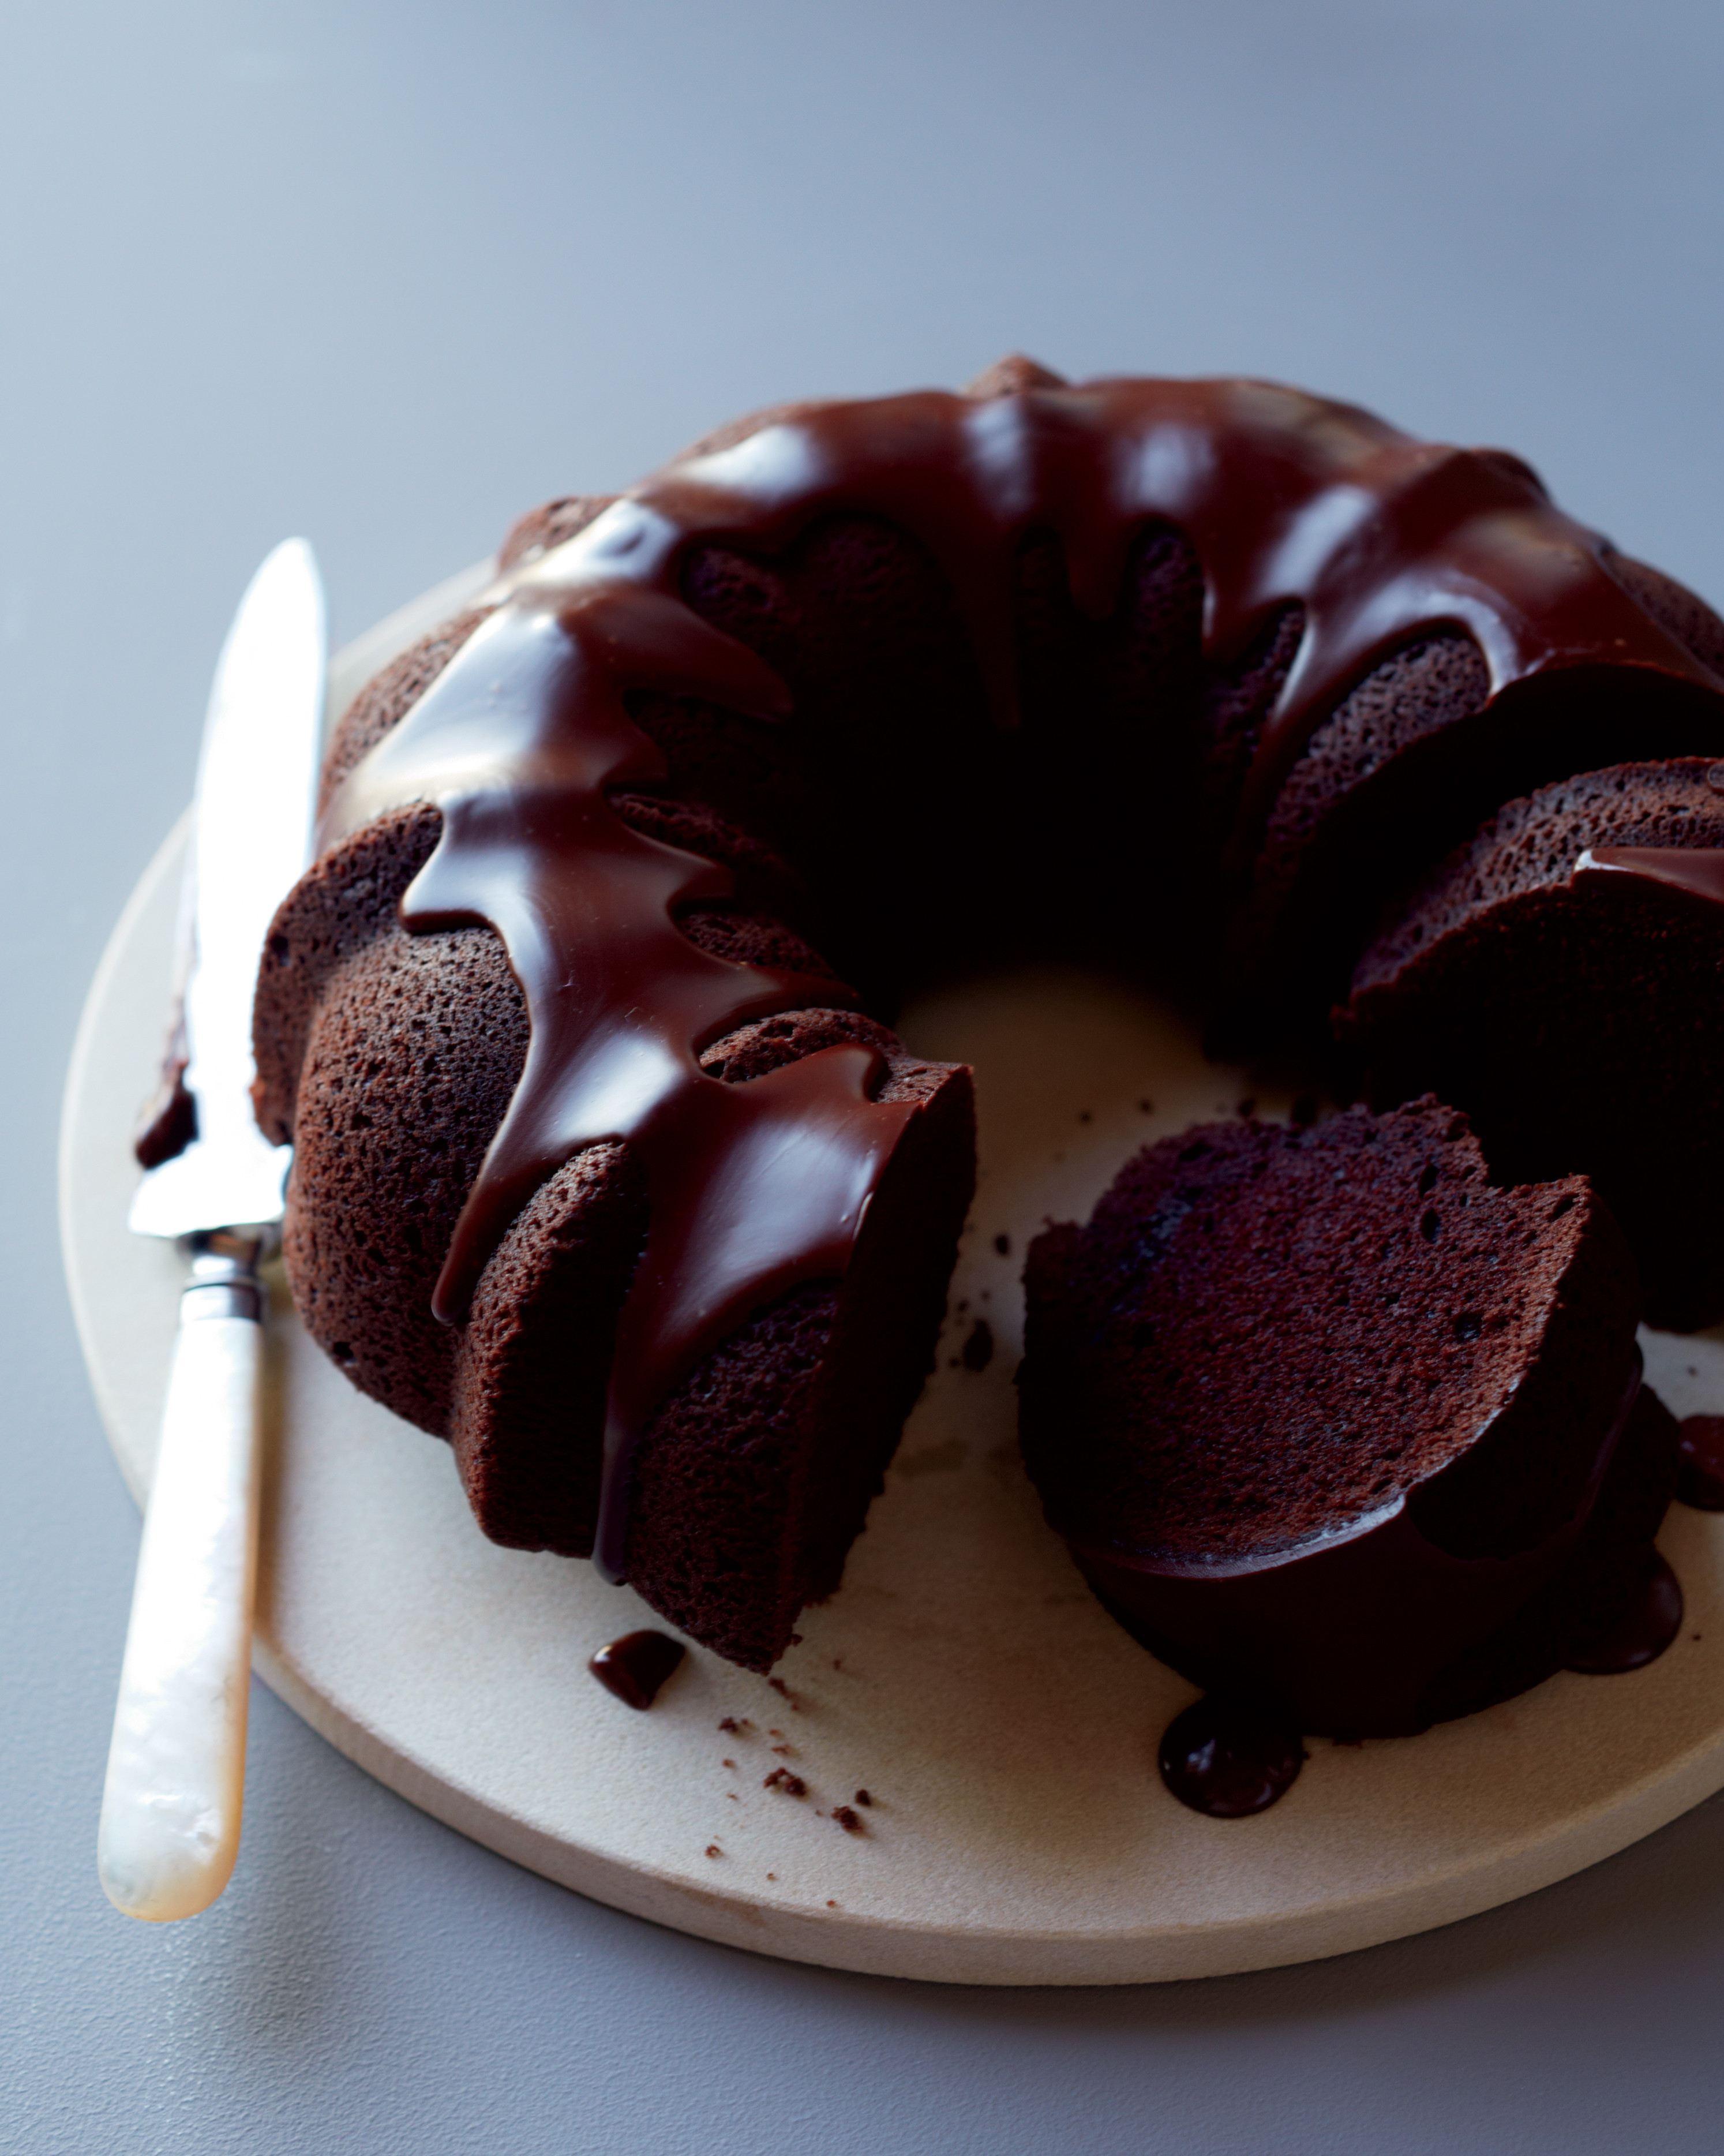 25 Easy Cake Recipes That Every Home Baker Should Master | Martha